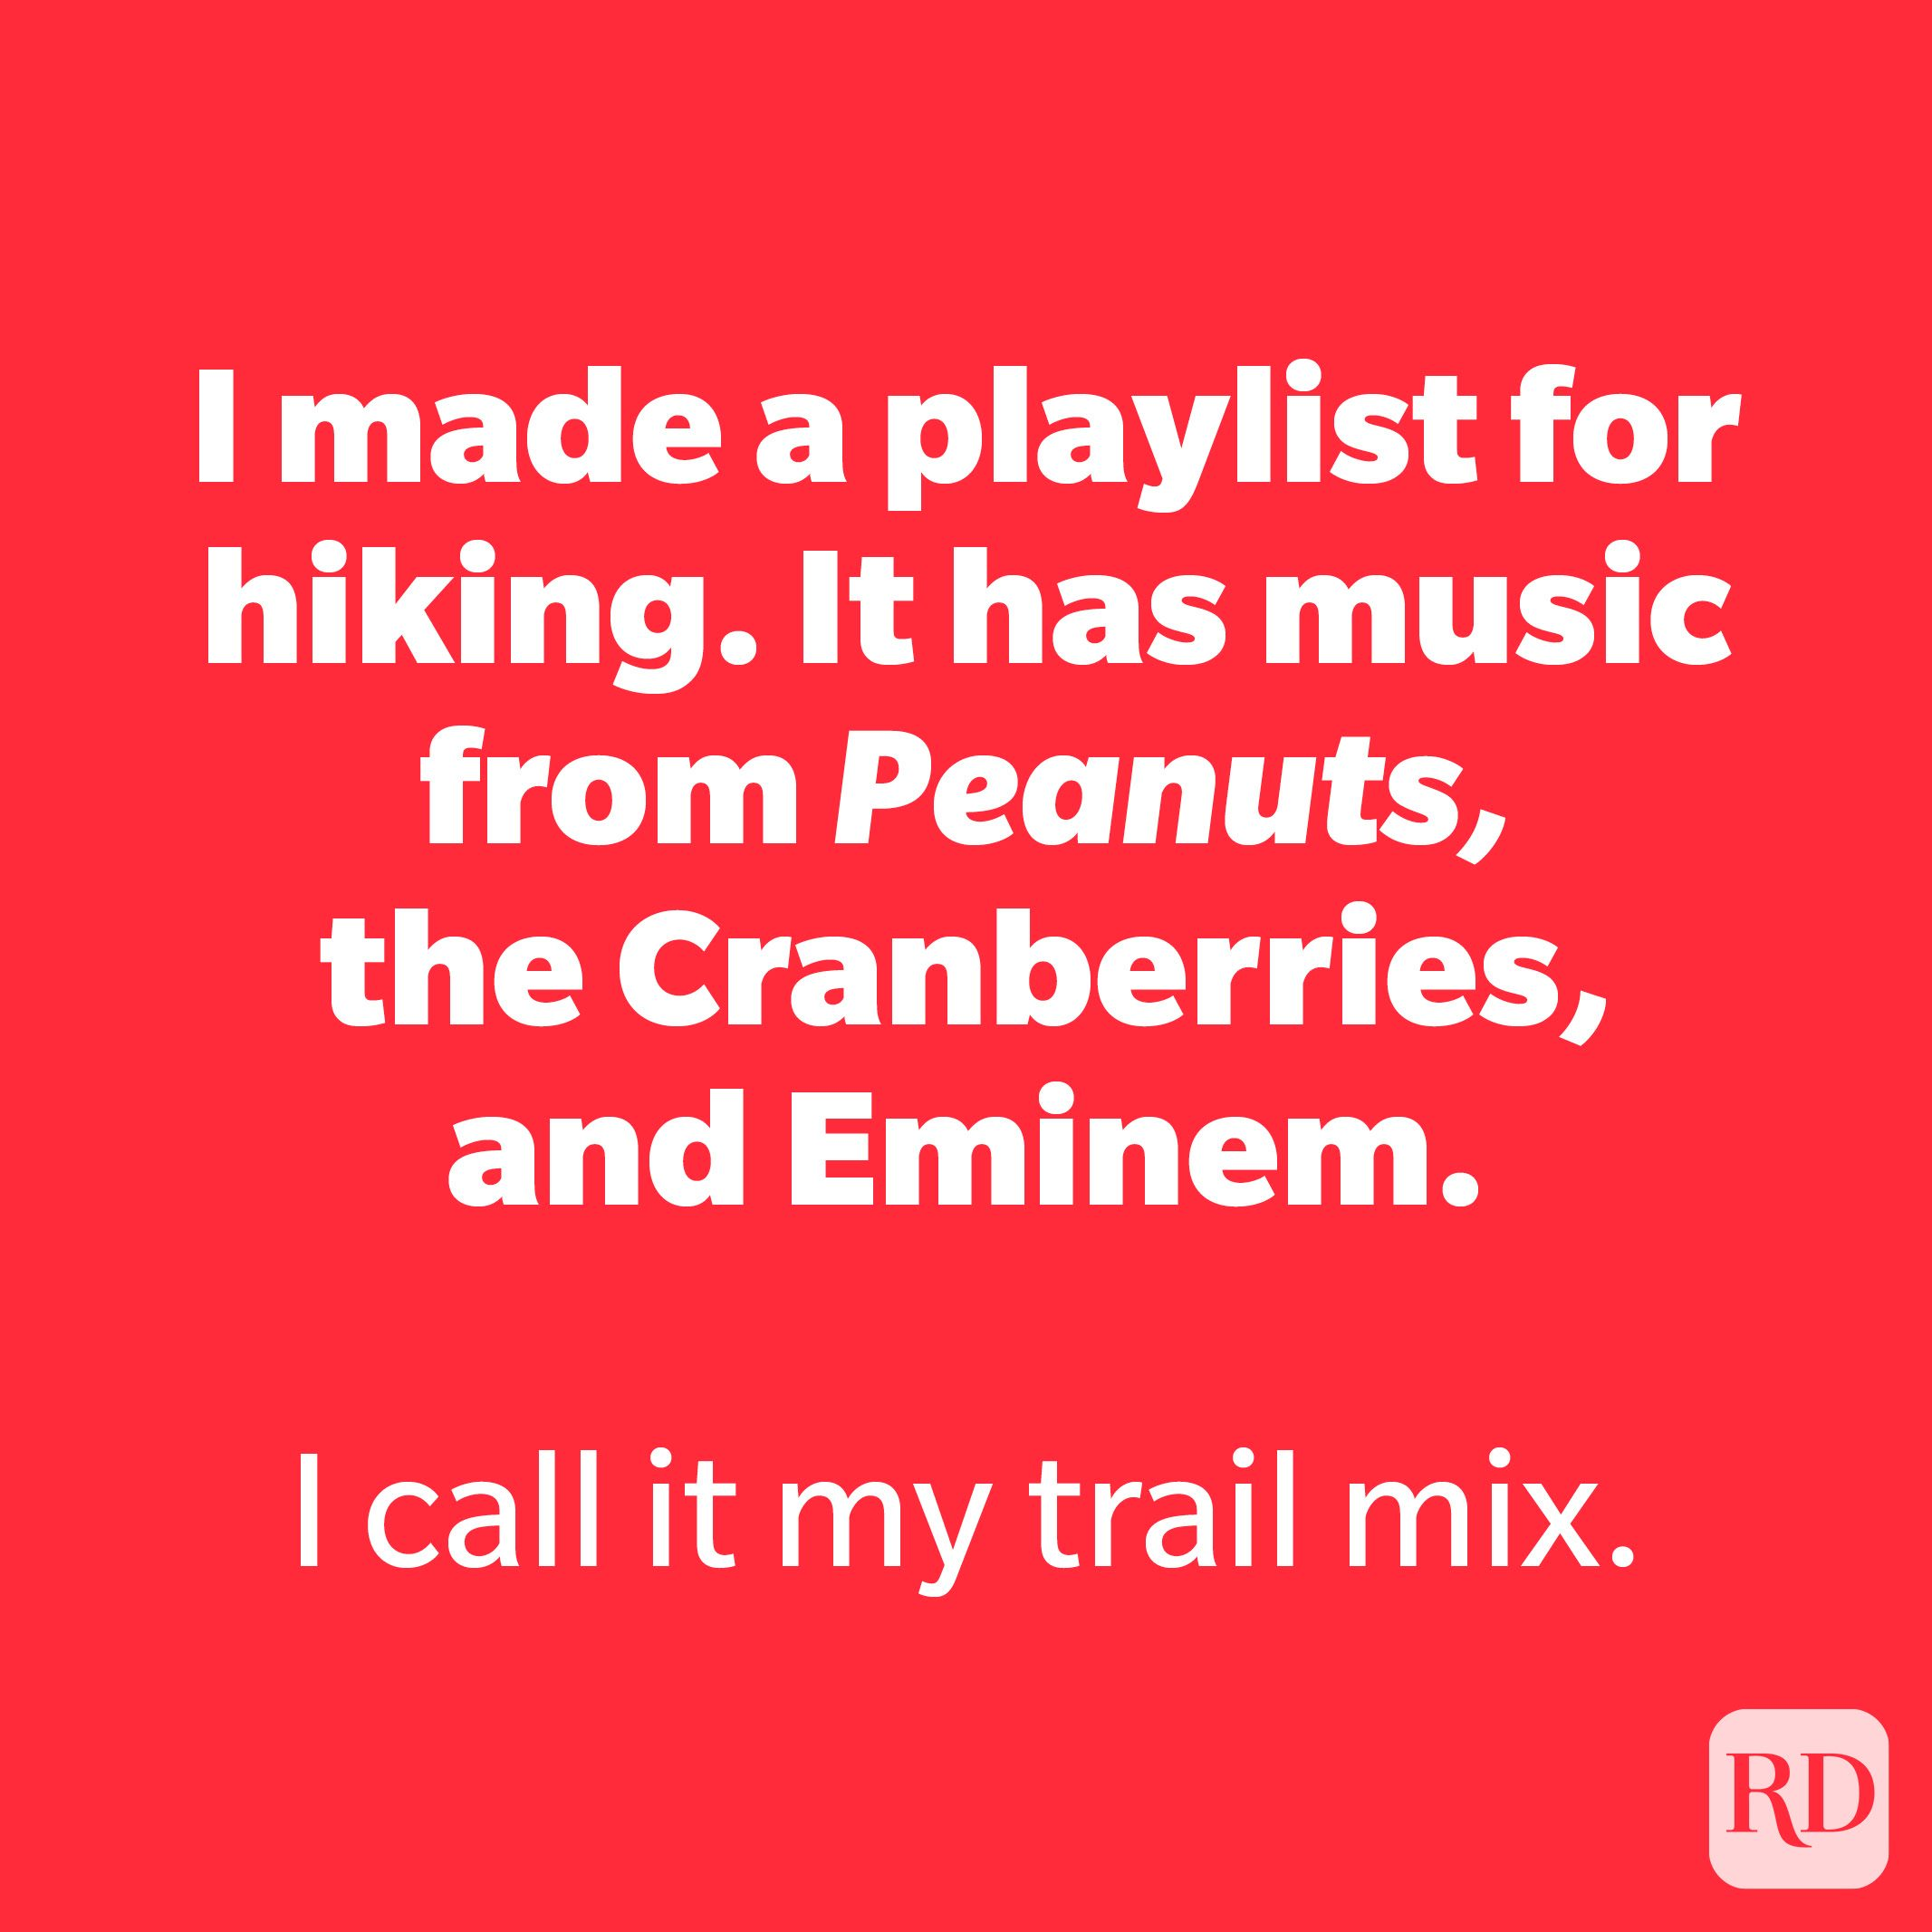 I made a playlist for hiking.It has music fromPeanuts,the Cranberries, and Eminem.